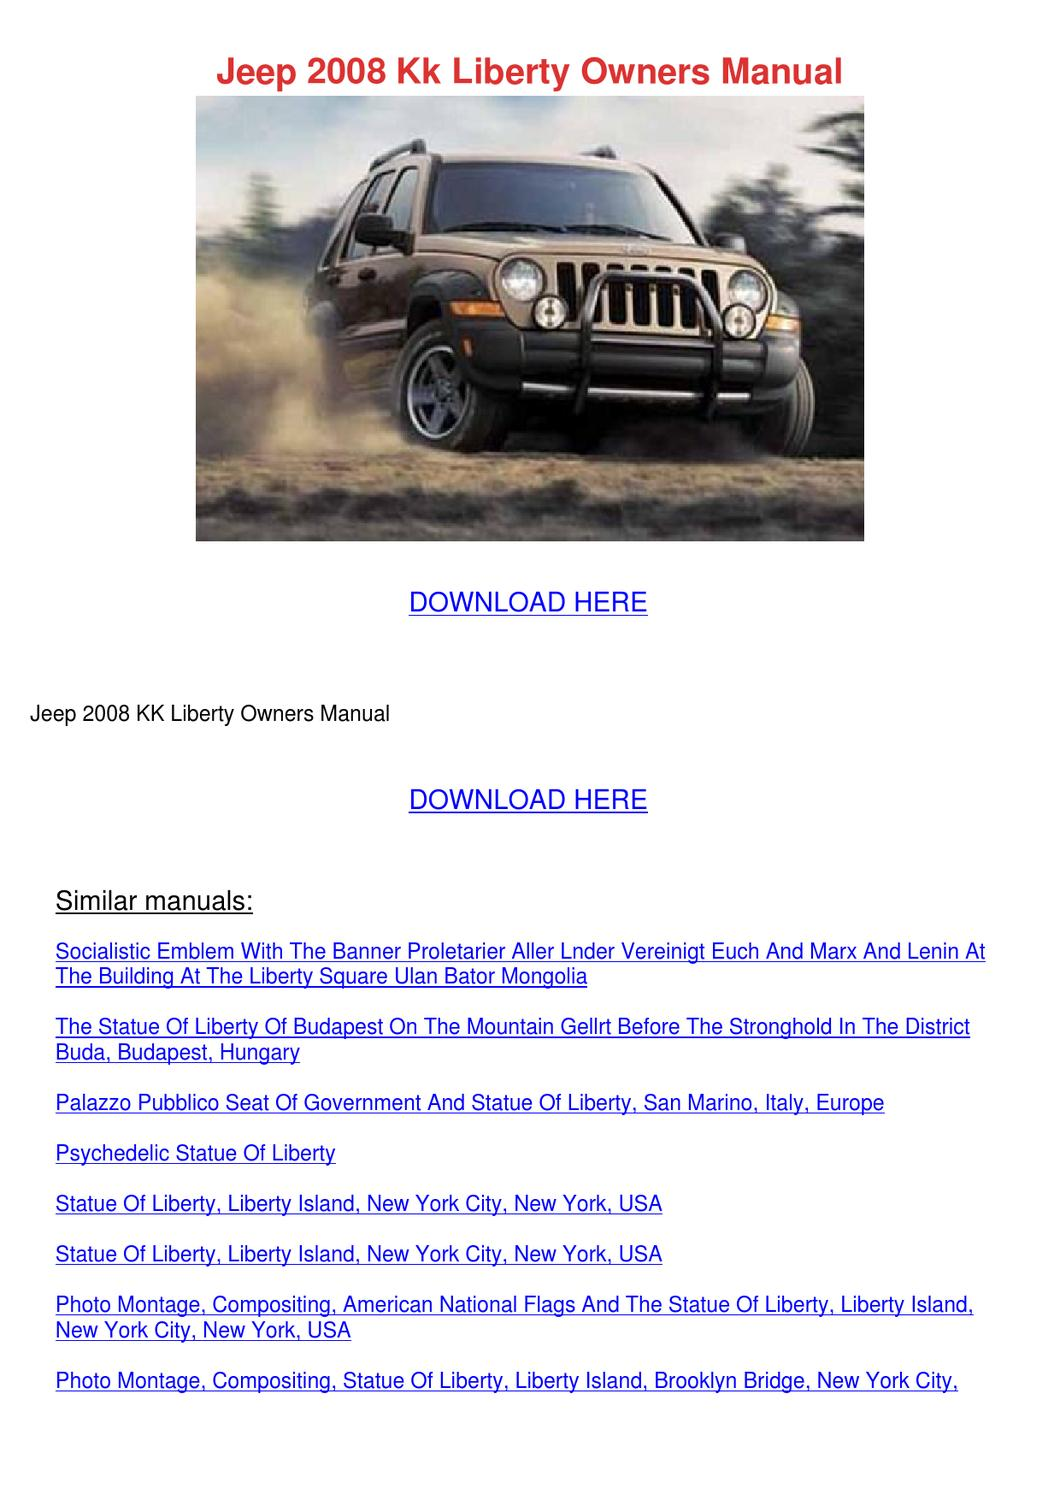 Jeep 2008 Kk Liberty Owners Manual by PercyOakley - issuu